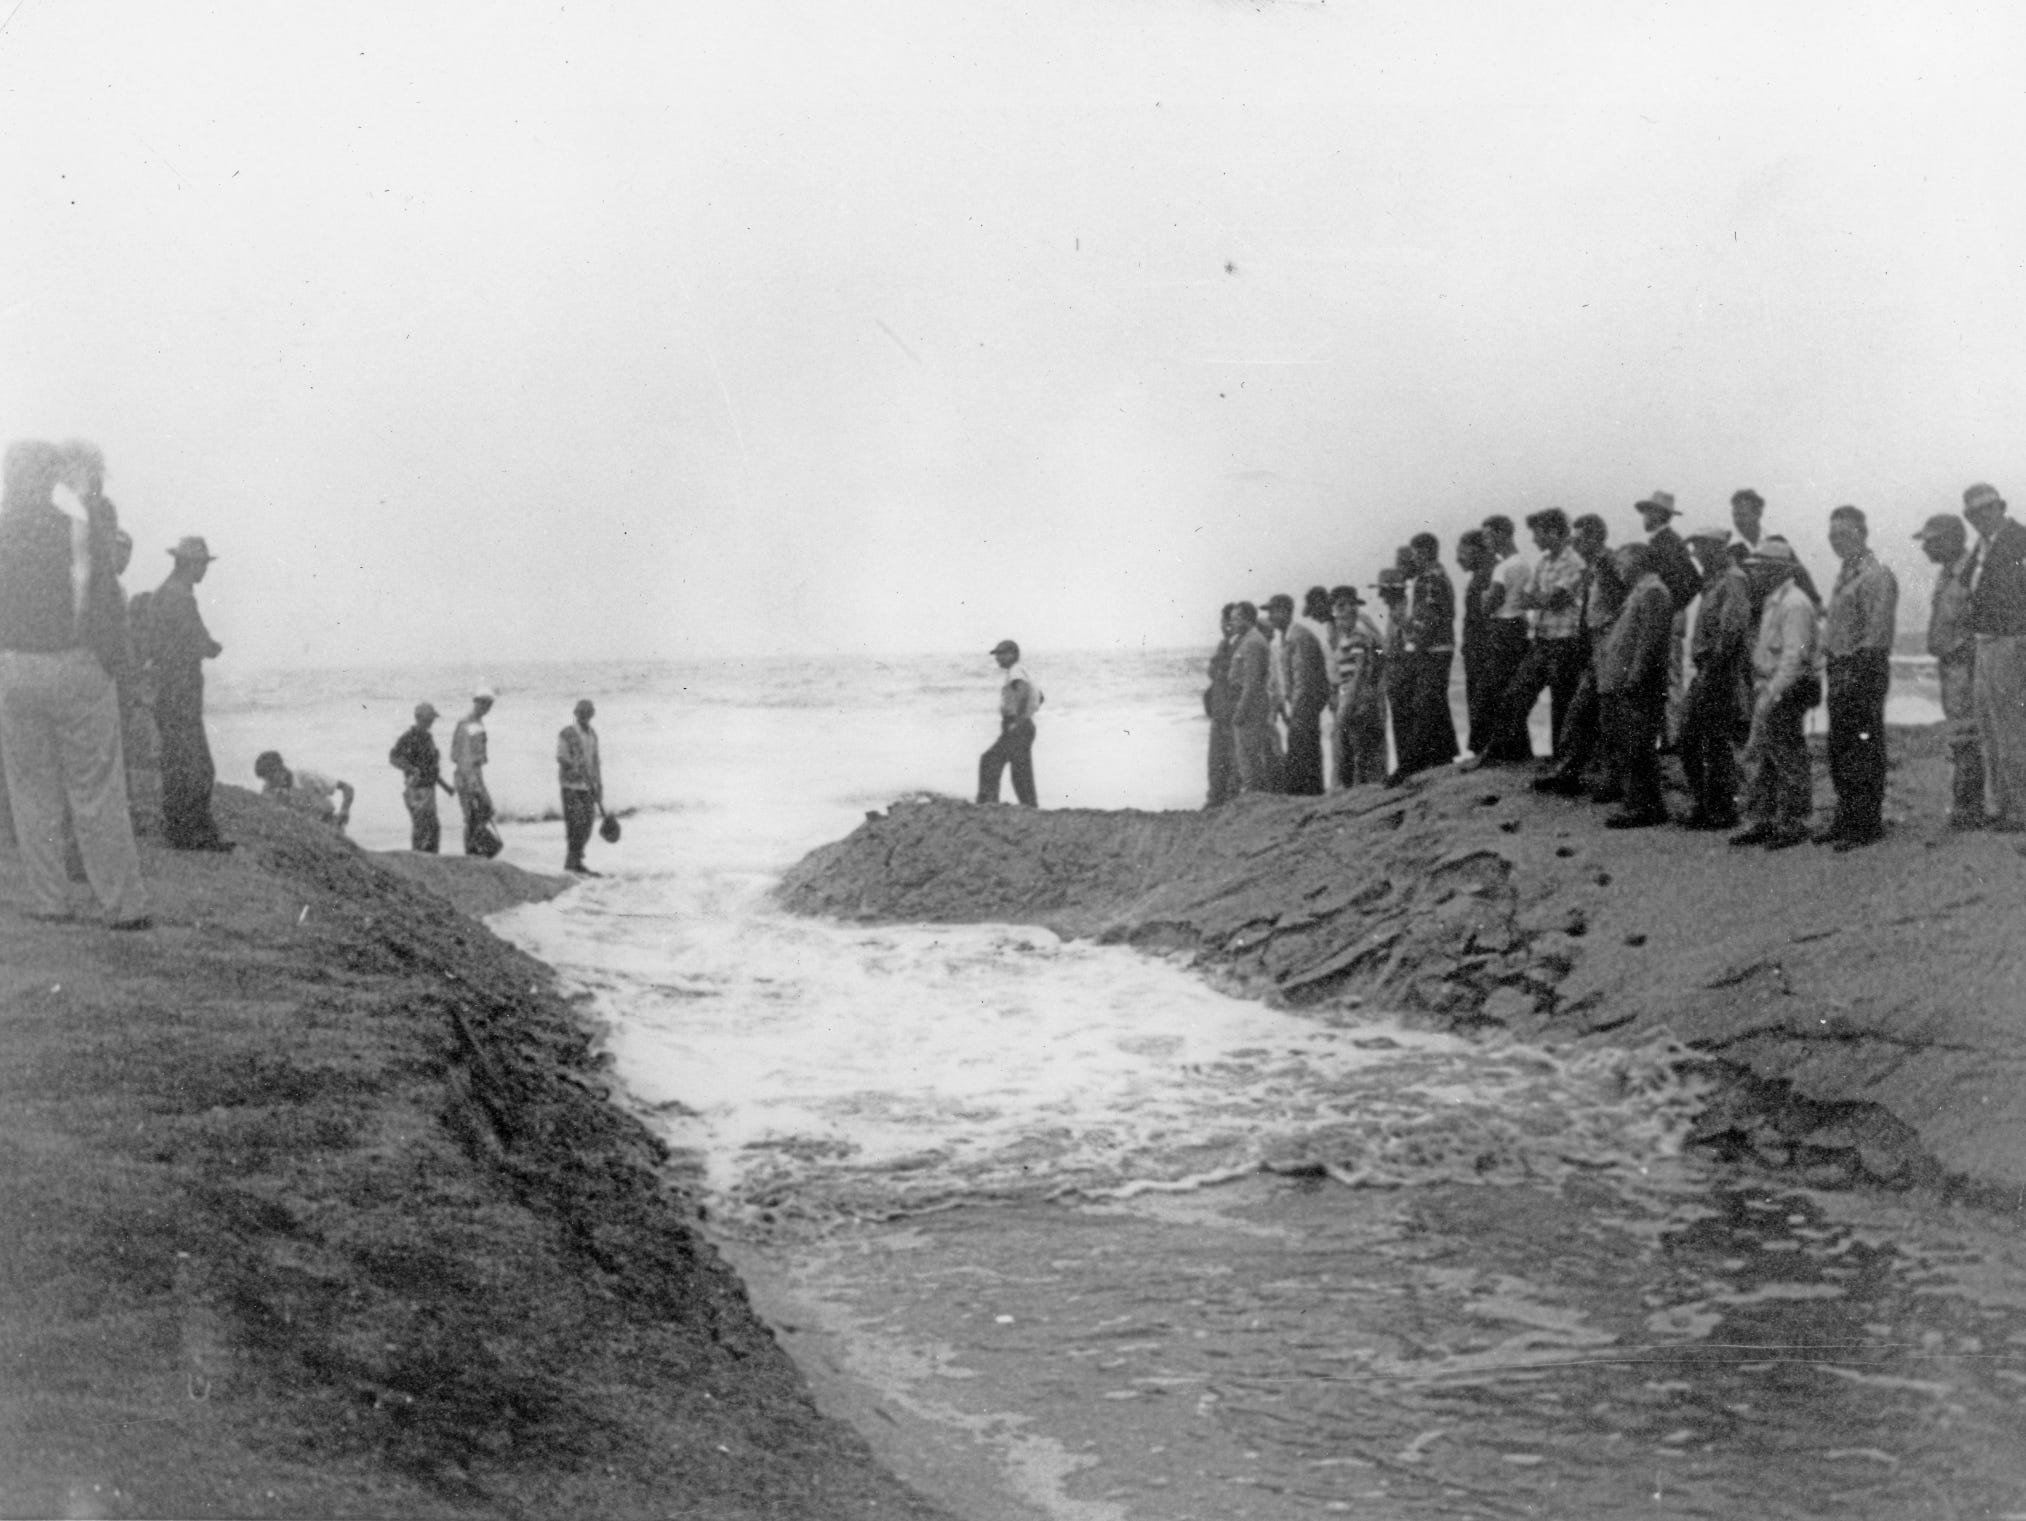 First water flowing through the newly opened Sebastian Inlet in 1948.